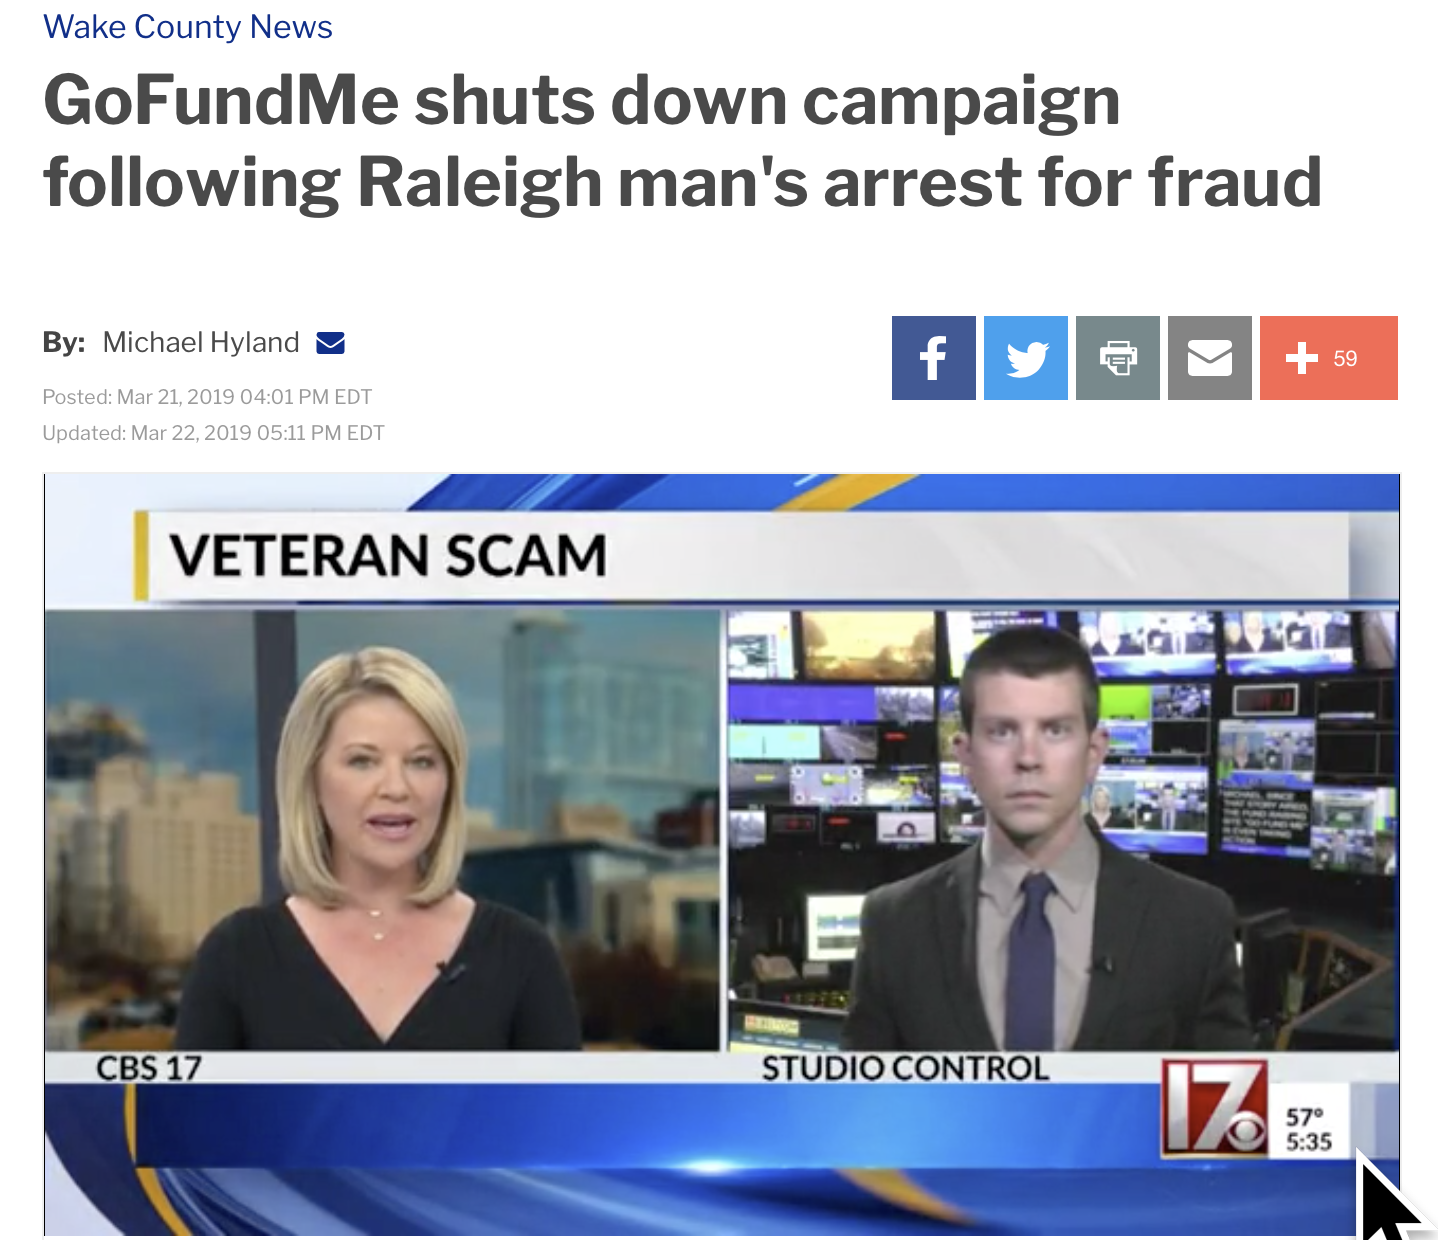 Man using HadIt name to collect funds -  Go FundMe shuts down campaign following Raleigh man's arrest for fraud